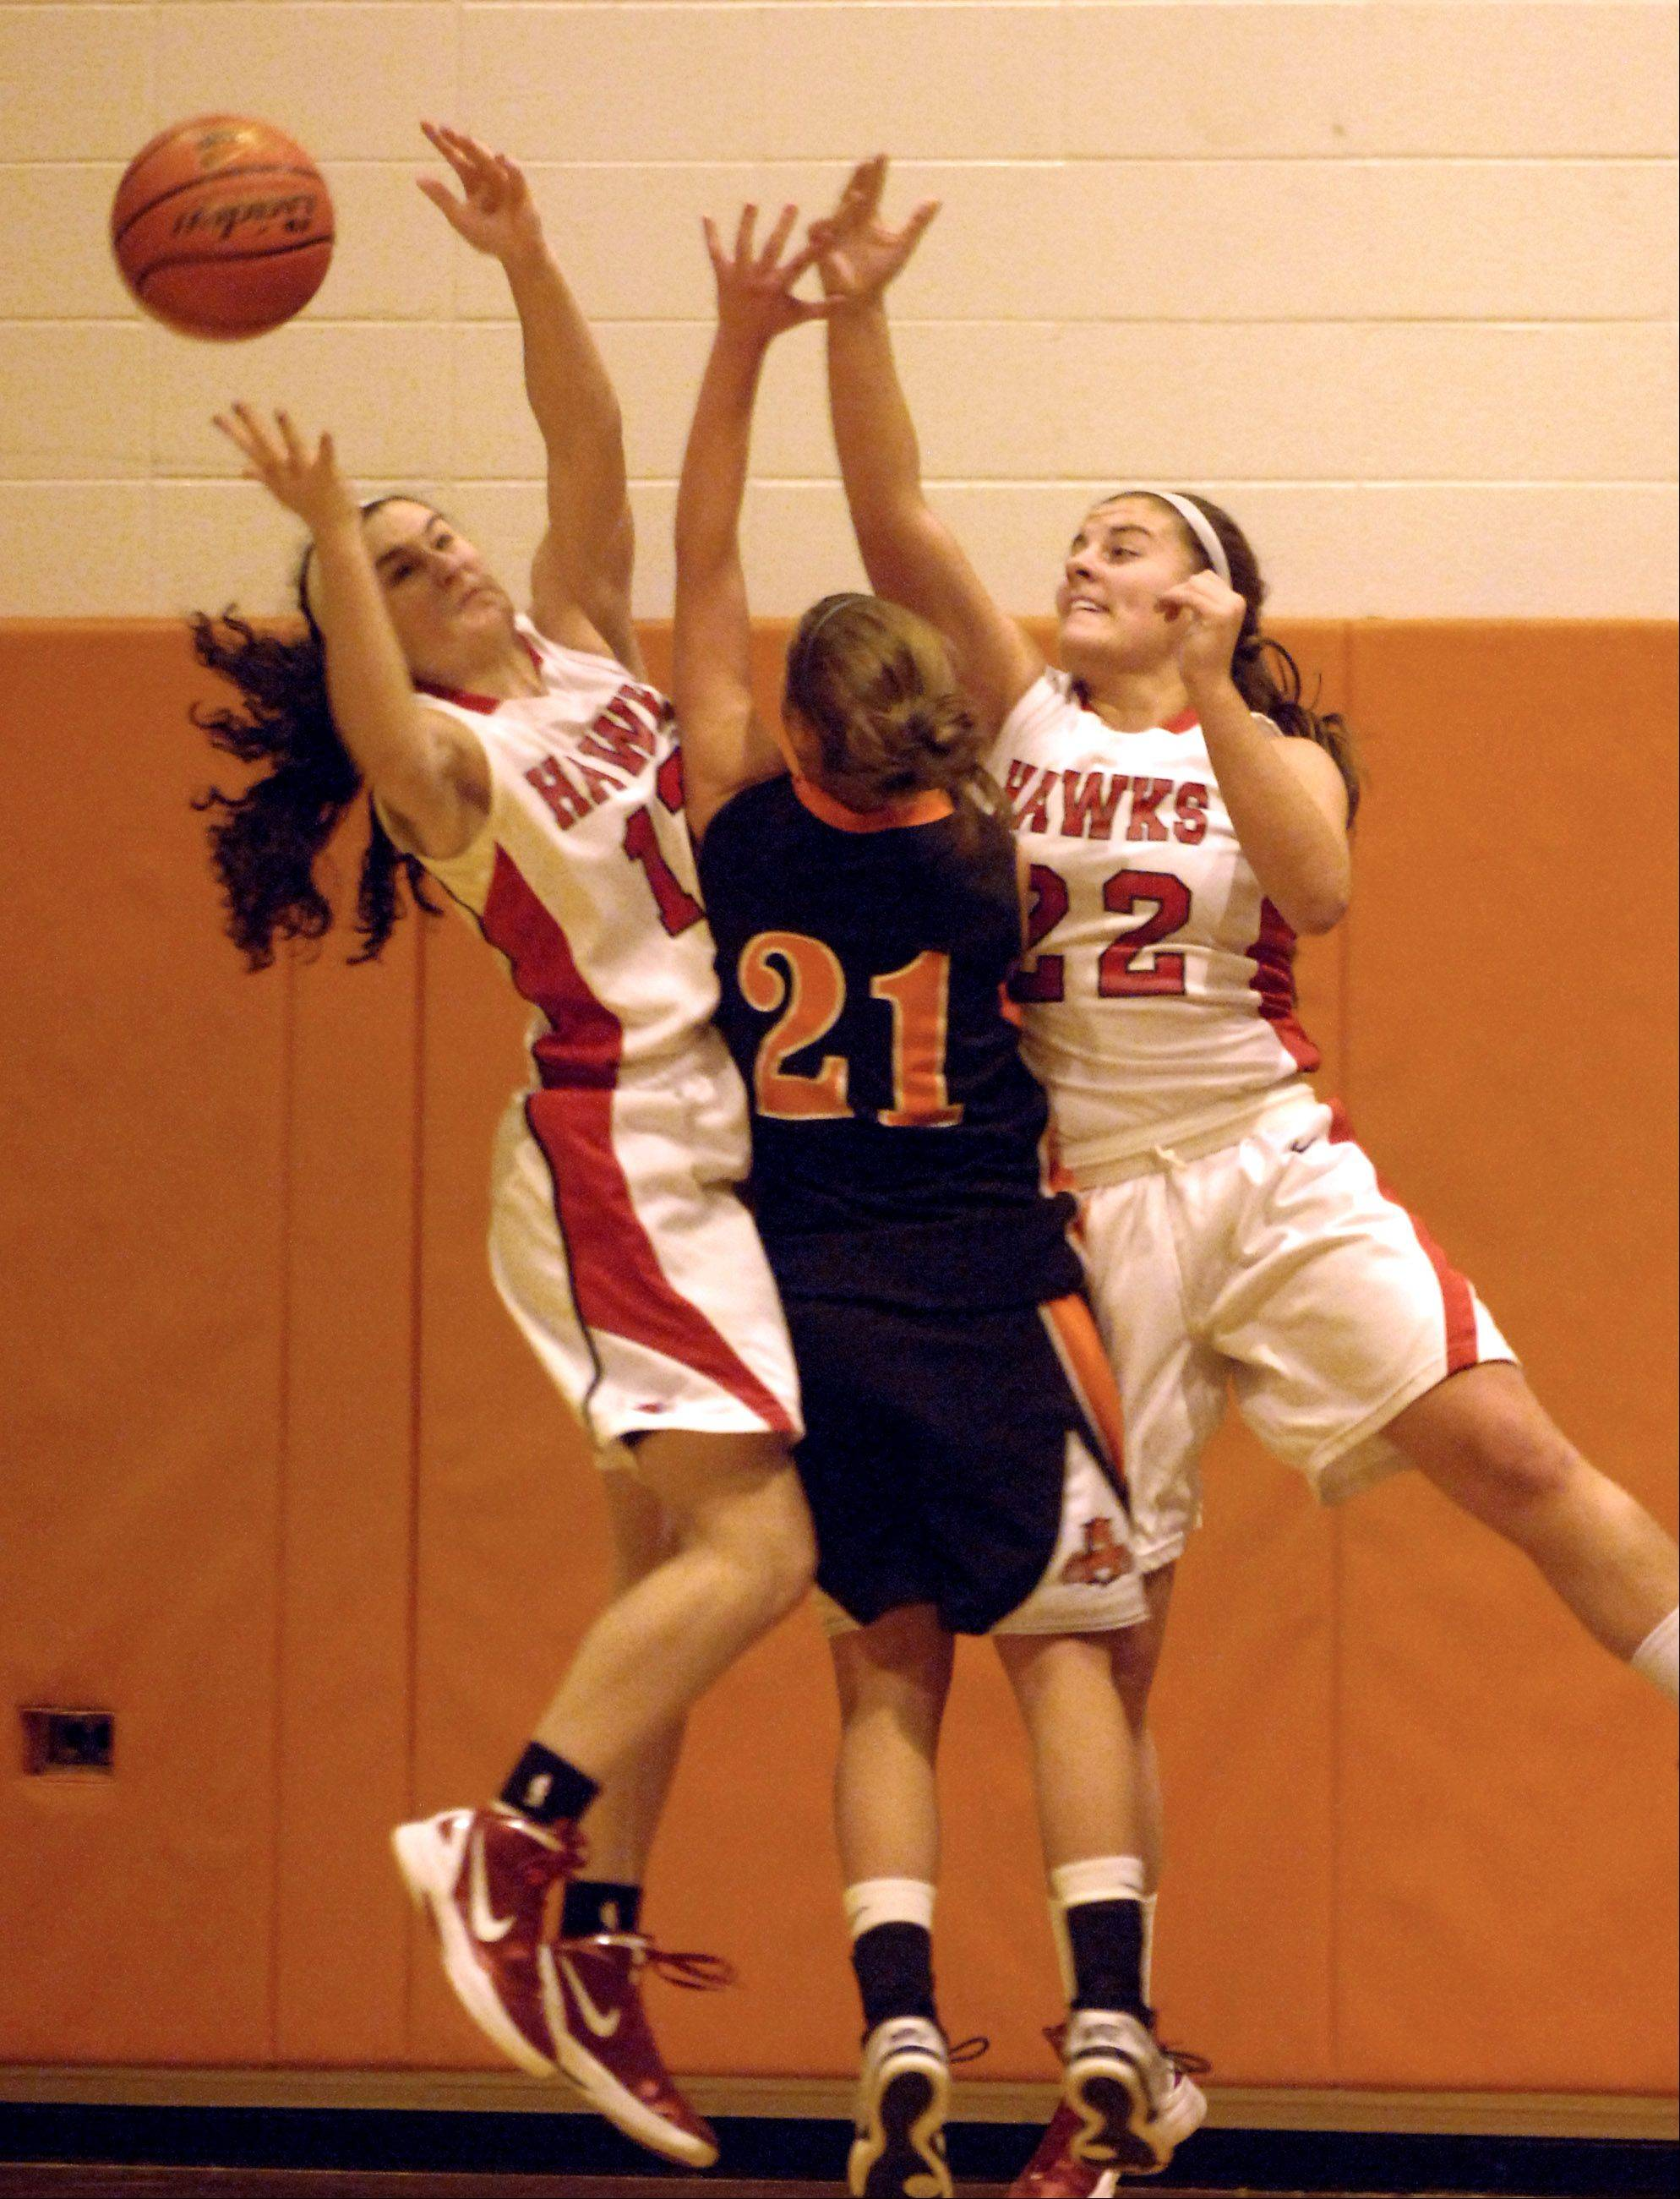 Libertyville's Olivia Mayer, 21, reaches for a rebound with Maine South's Regan Carmichael, left, and Nina Duric during Friday's Bison Classic 2011 girls basketball game in Buffalo Grove.